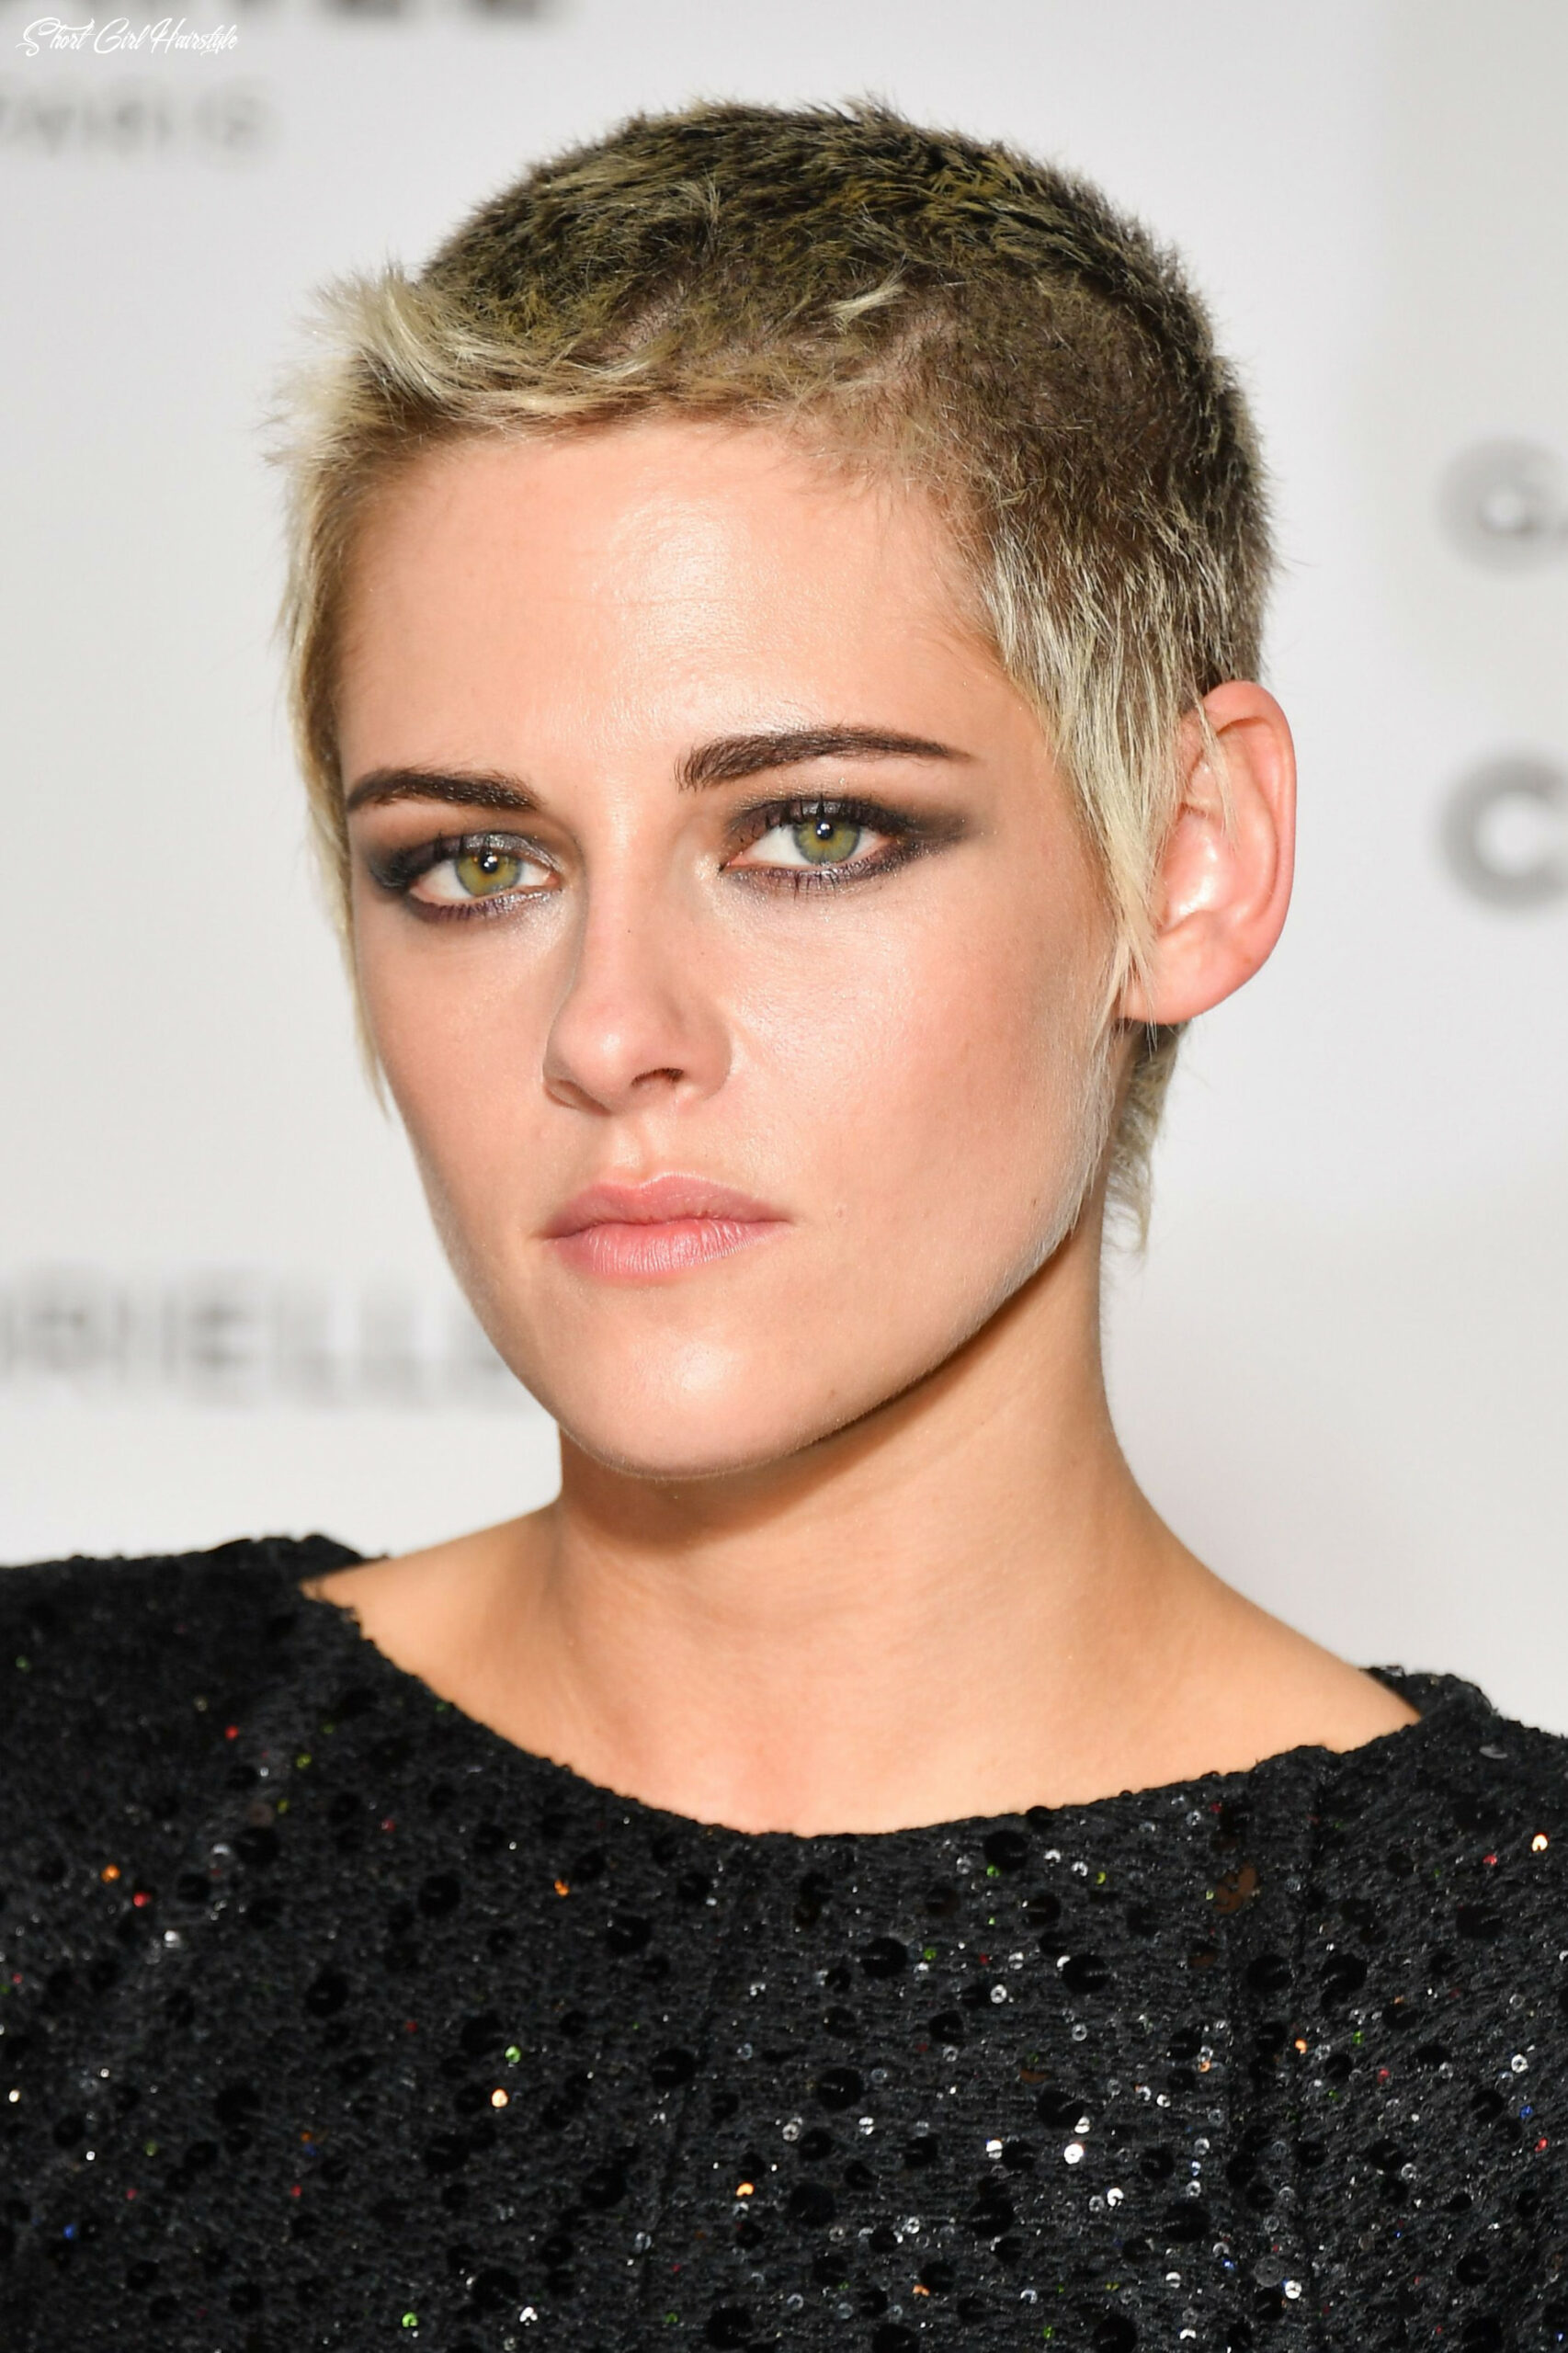 11 cute short hairstyles for women how to style short haircuts short girl hairstyle